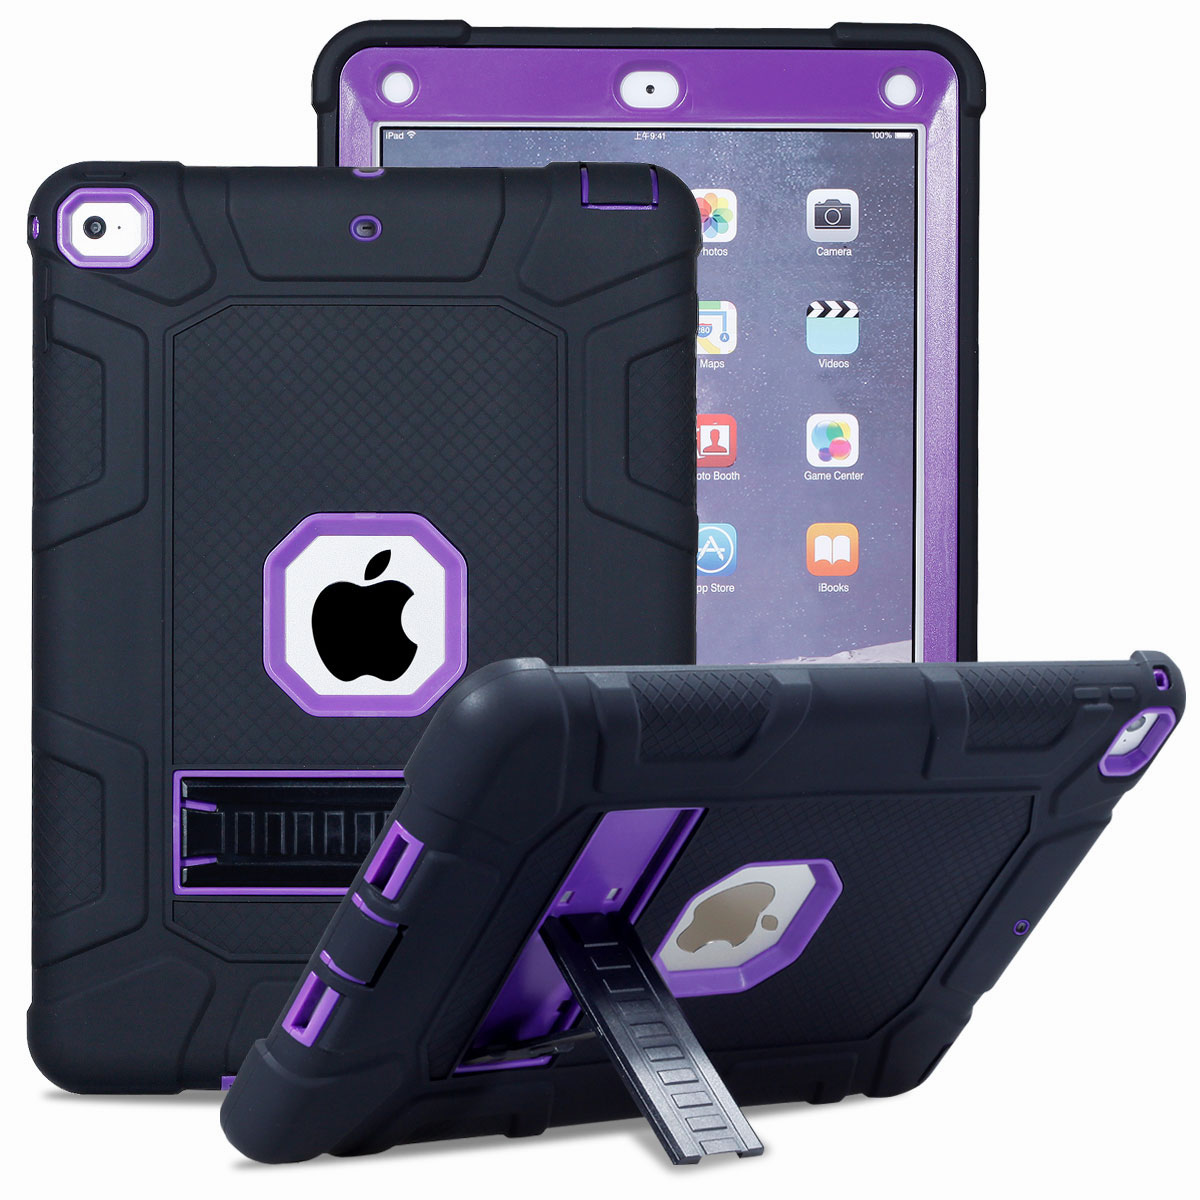 Heavy Duty Military Shockproof Armor Protection Case Cover For iPad Mini 1 2 3 4